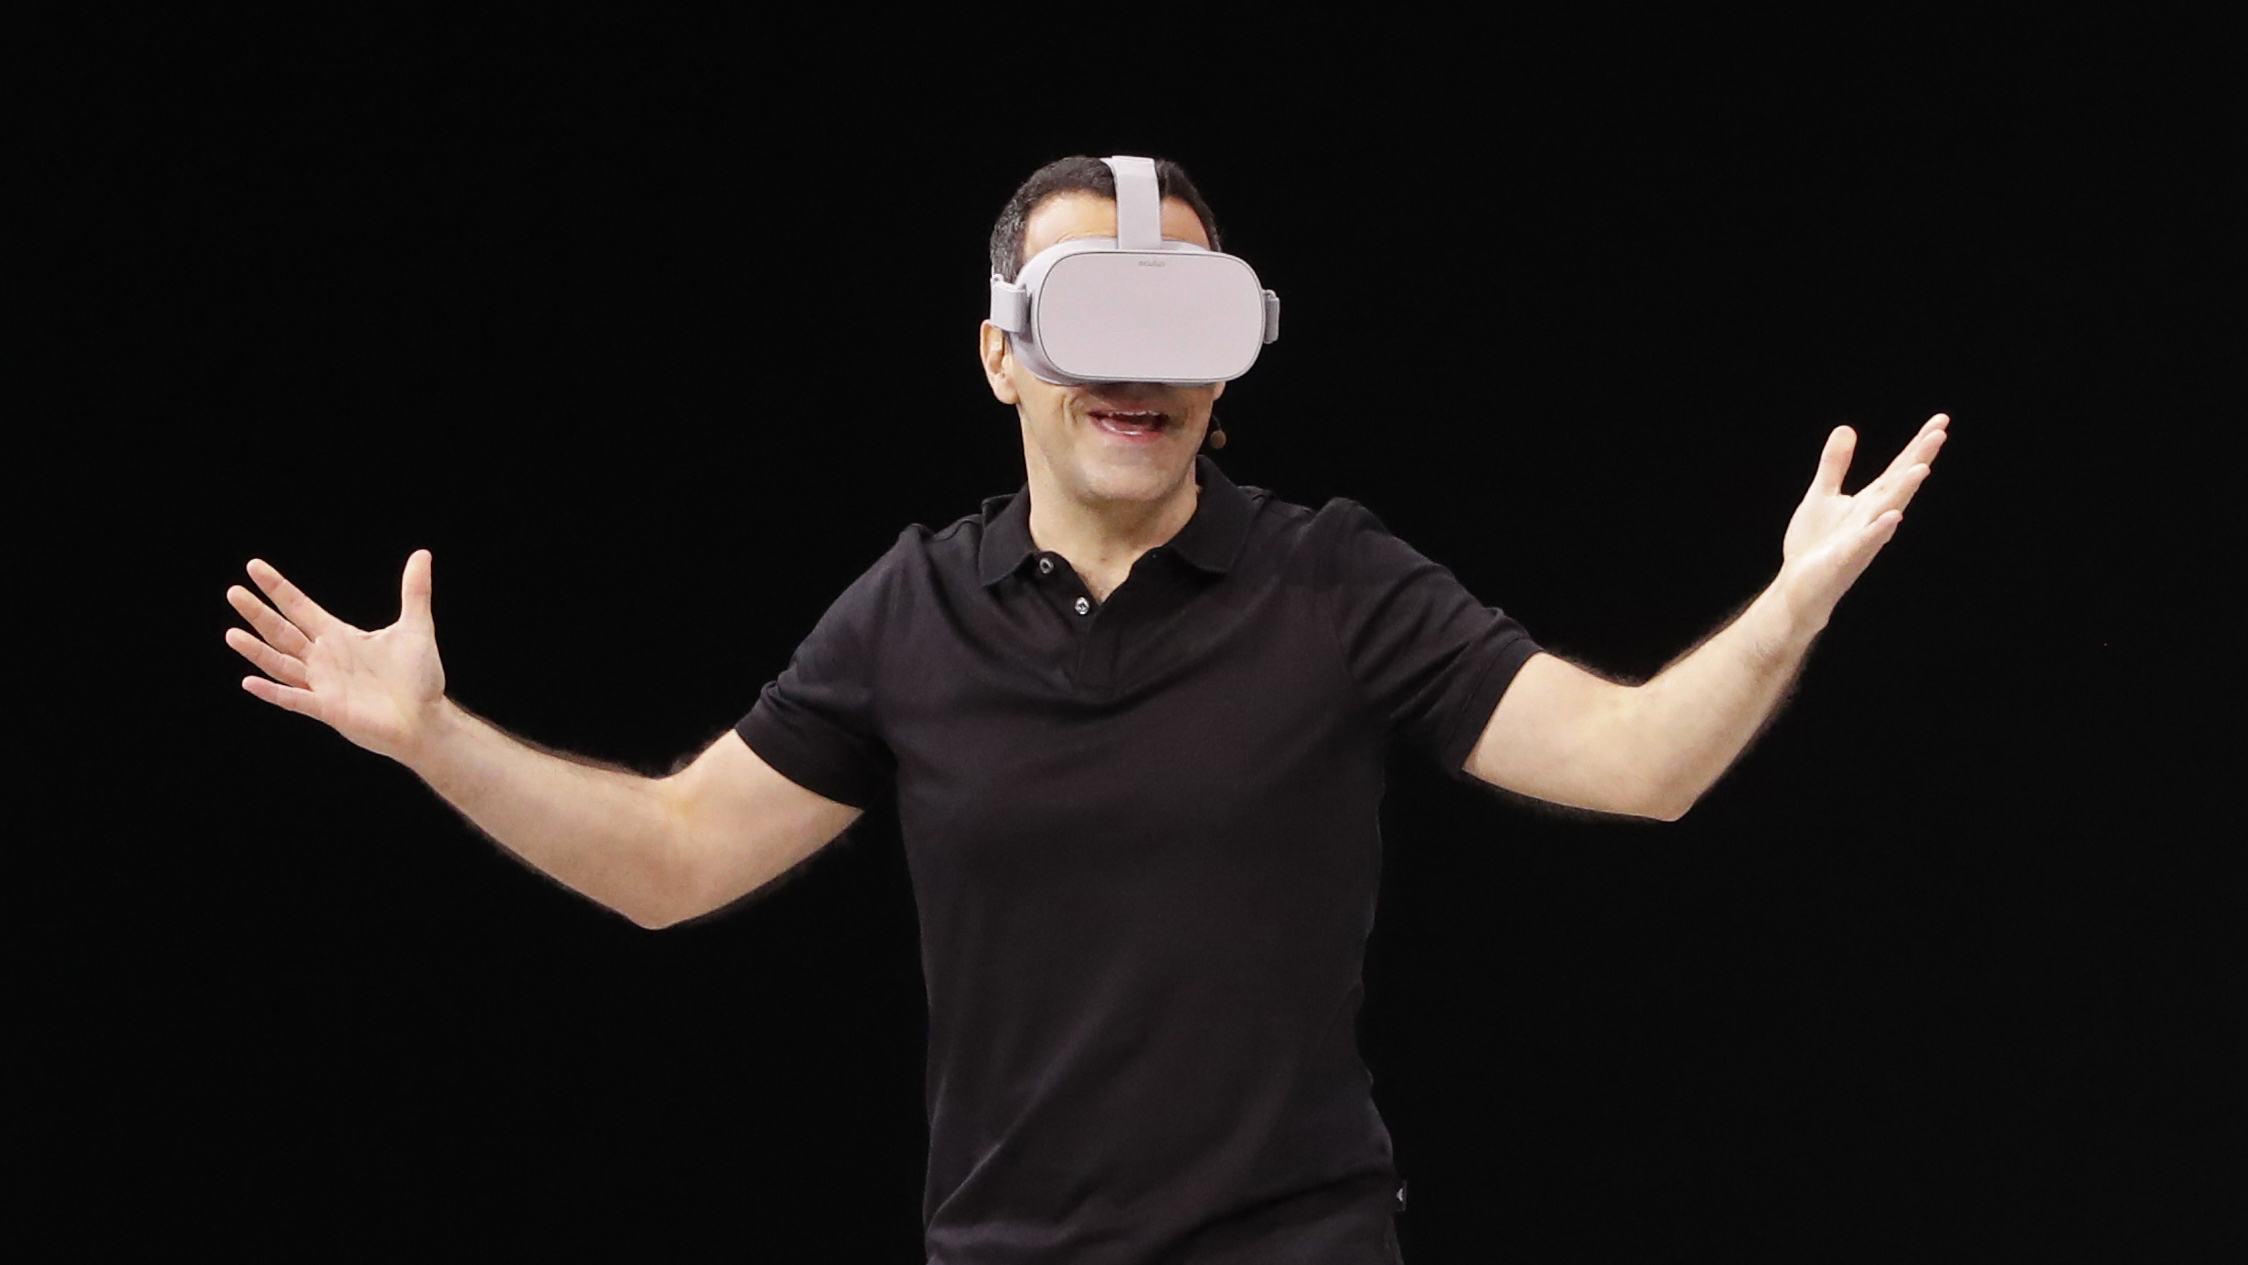 E3 2018: Wireless VR headsets like Oculus Go are here, but where are